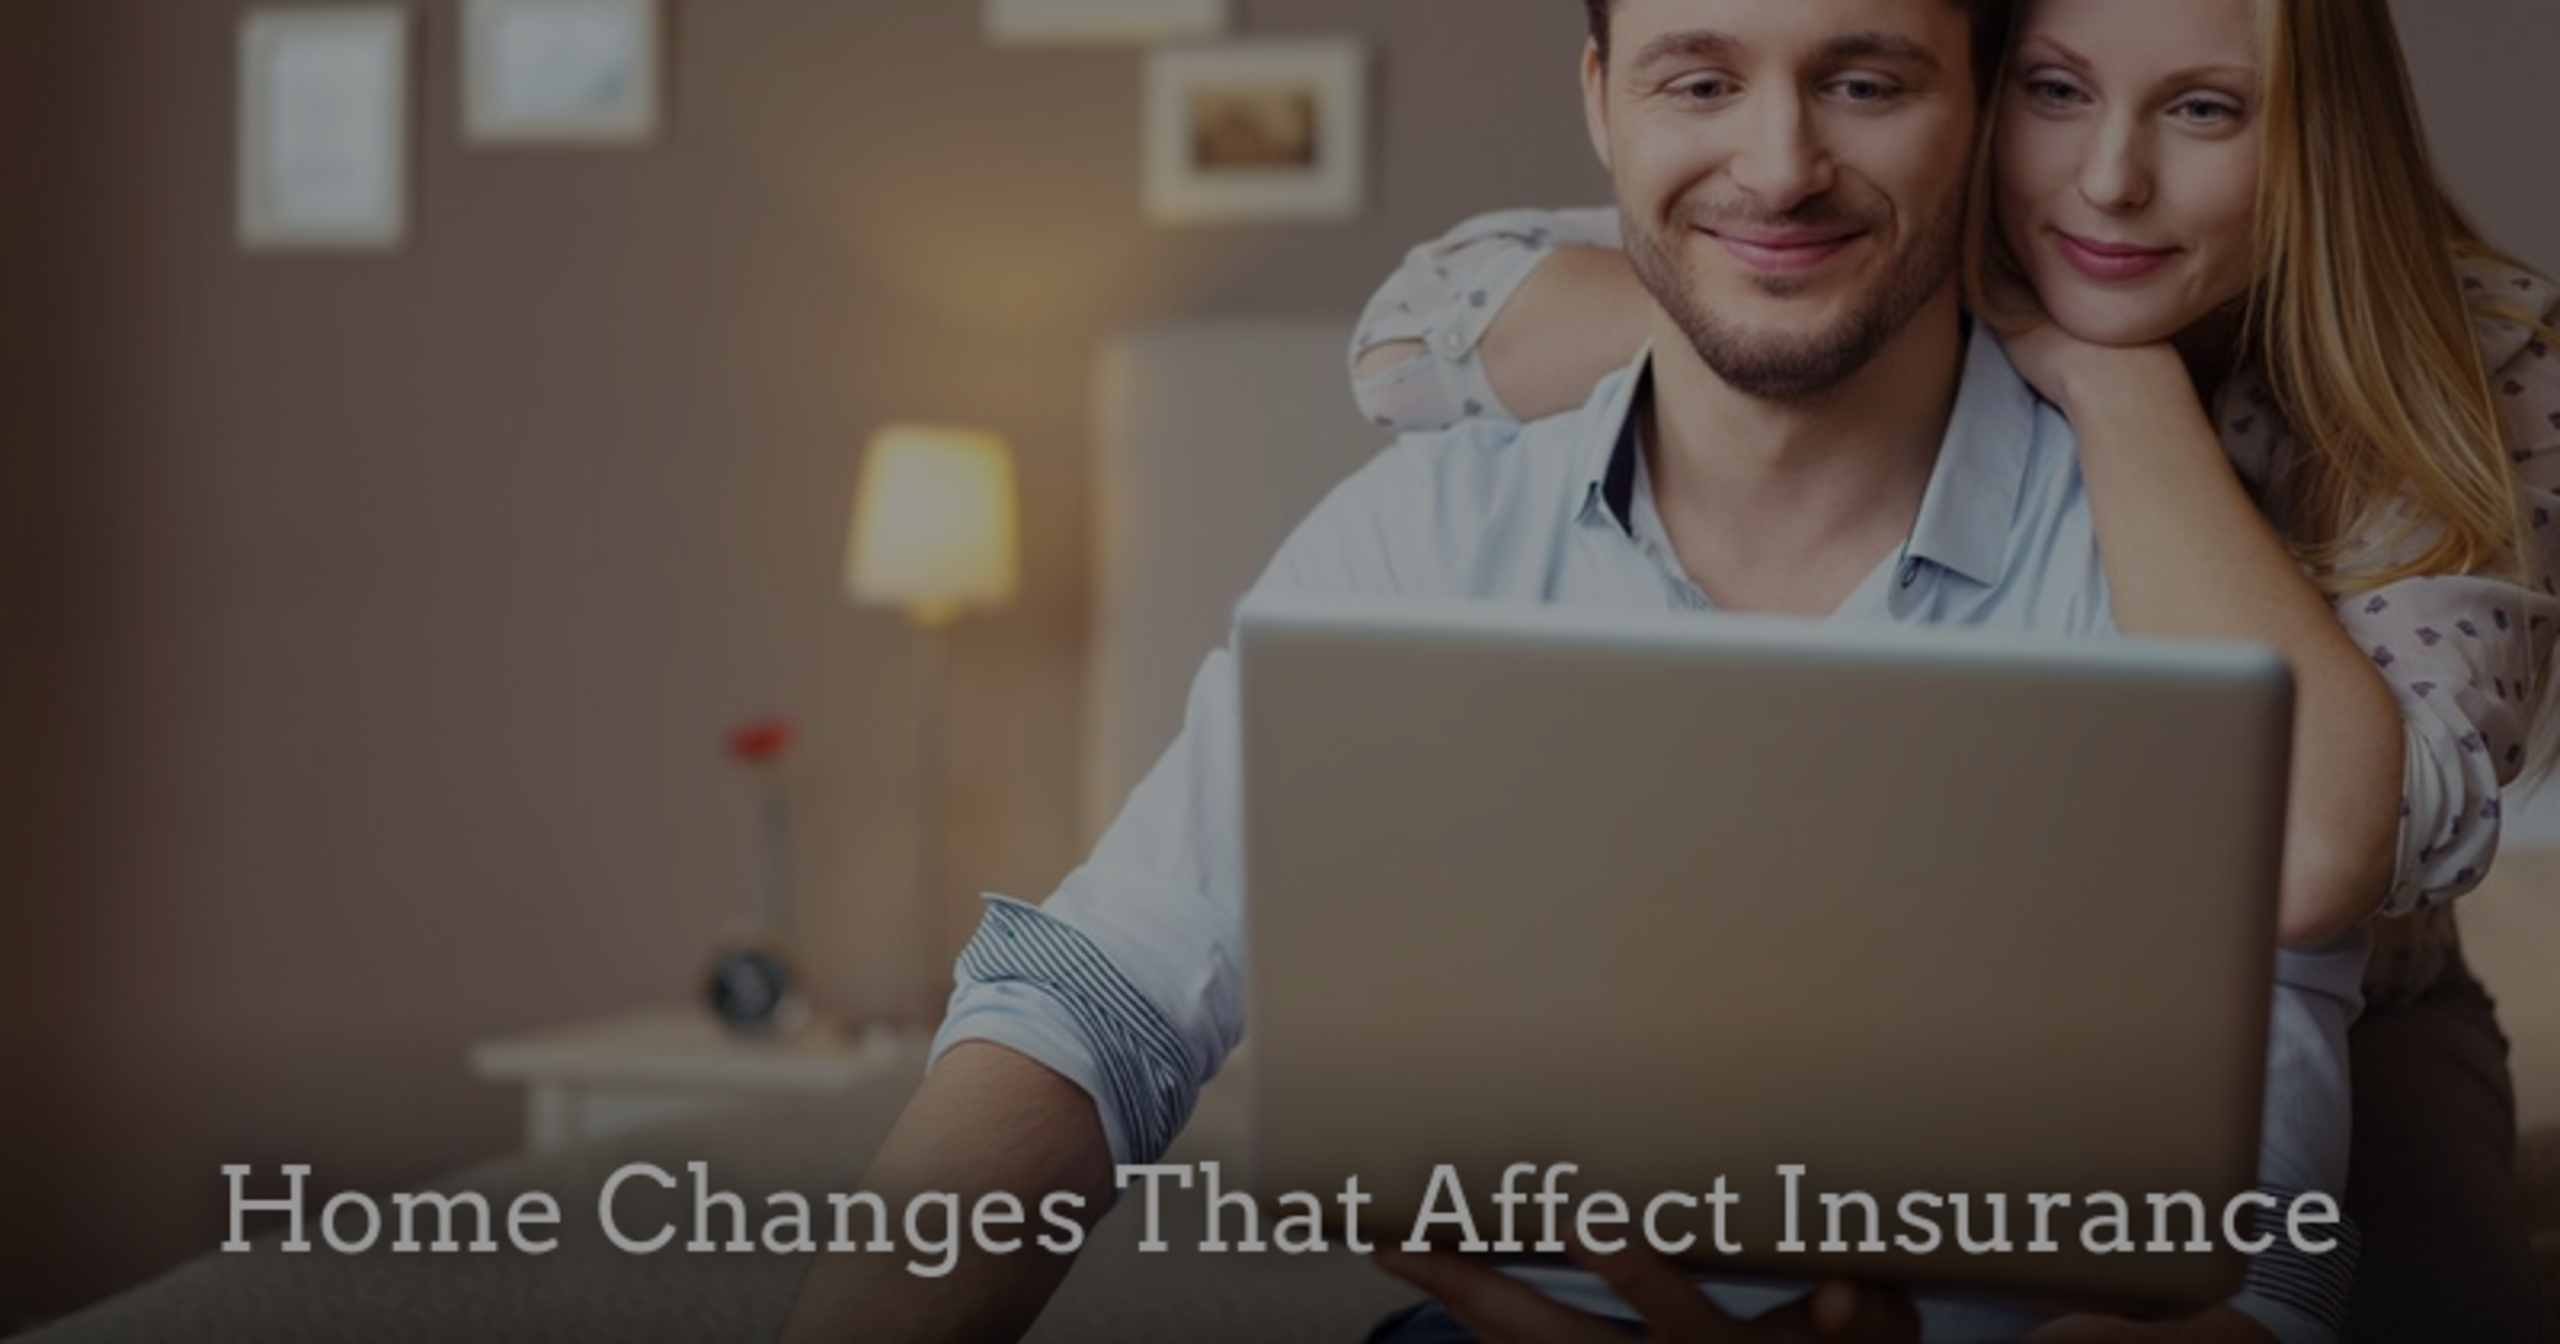 Home Changes That Affect Insurance